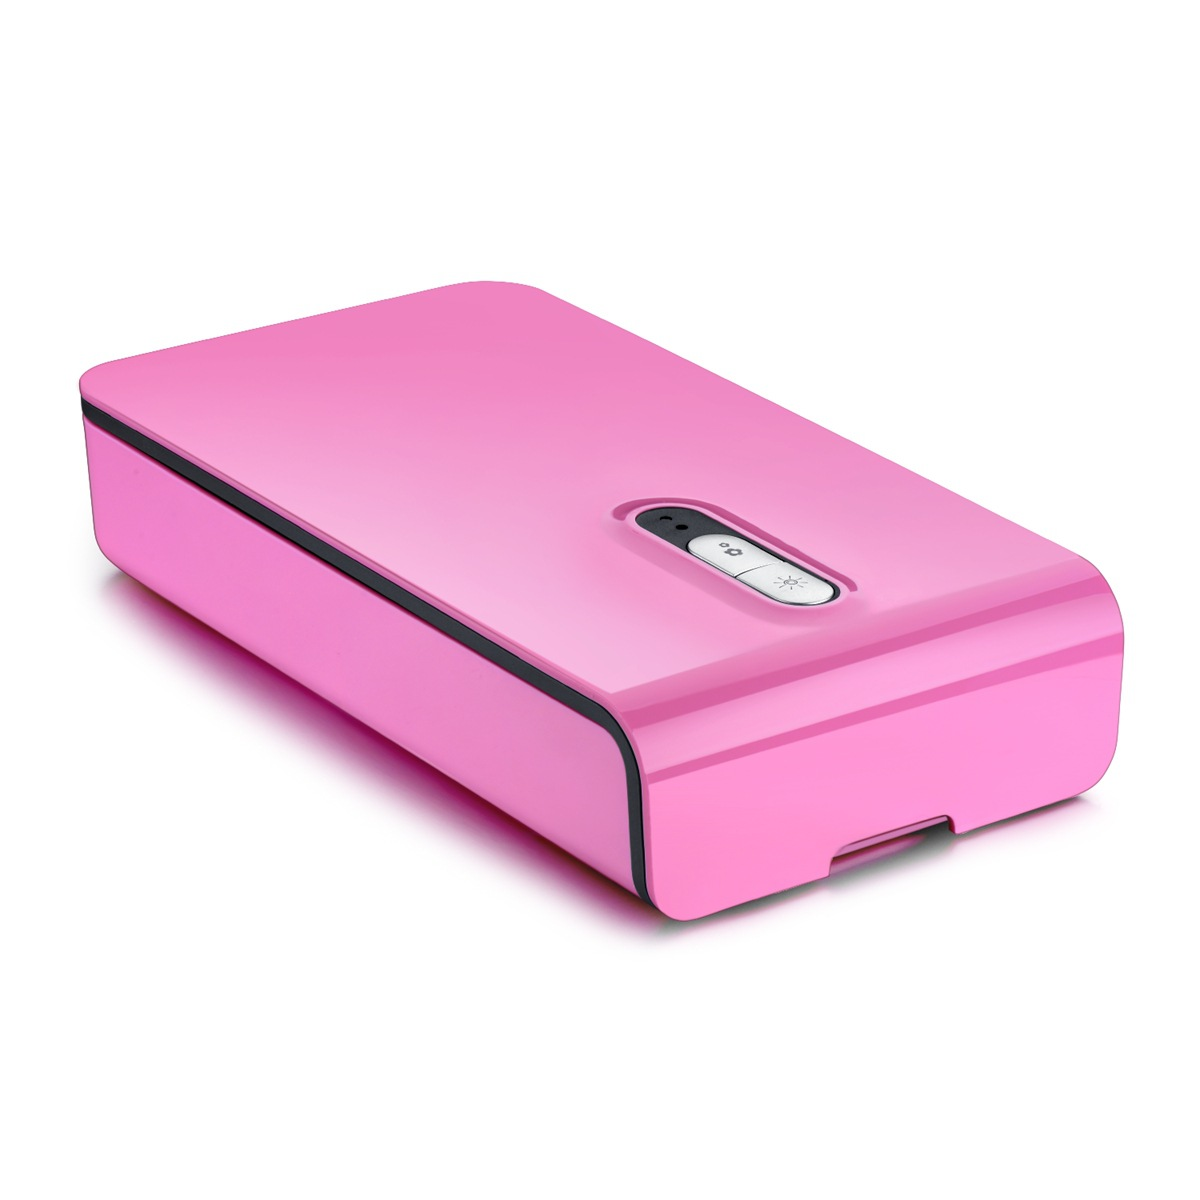 Multi-function Plastic UV Sterilizer Case Box Blue Portable for Mask Mobile Phone Watch Jewelry Pink